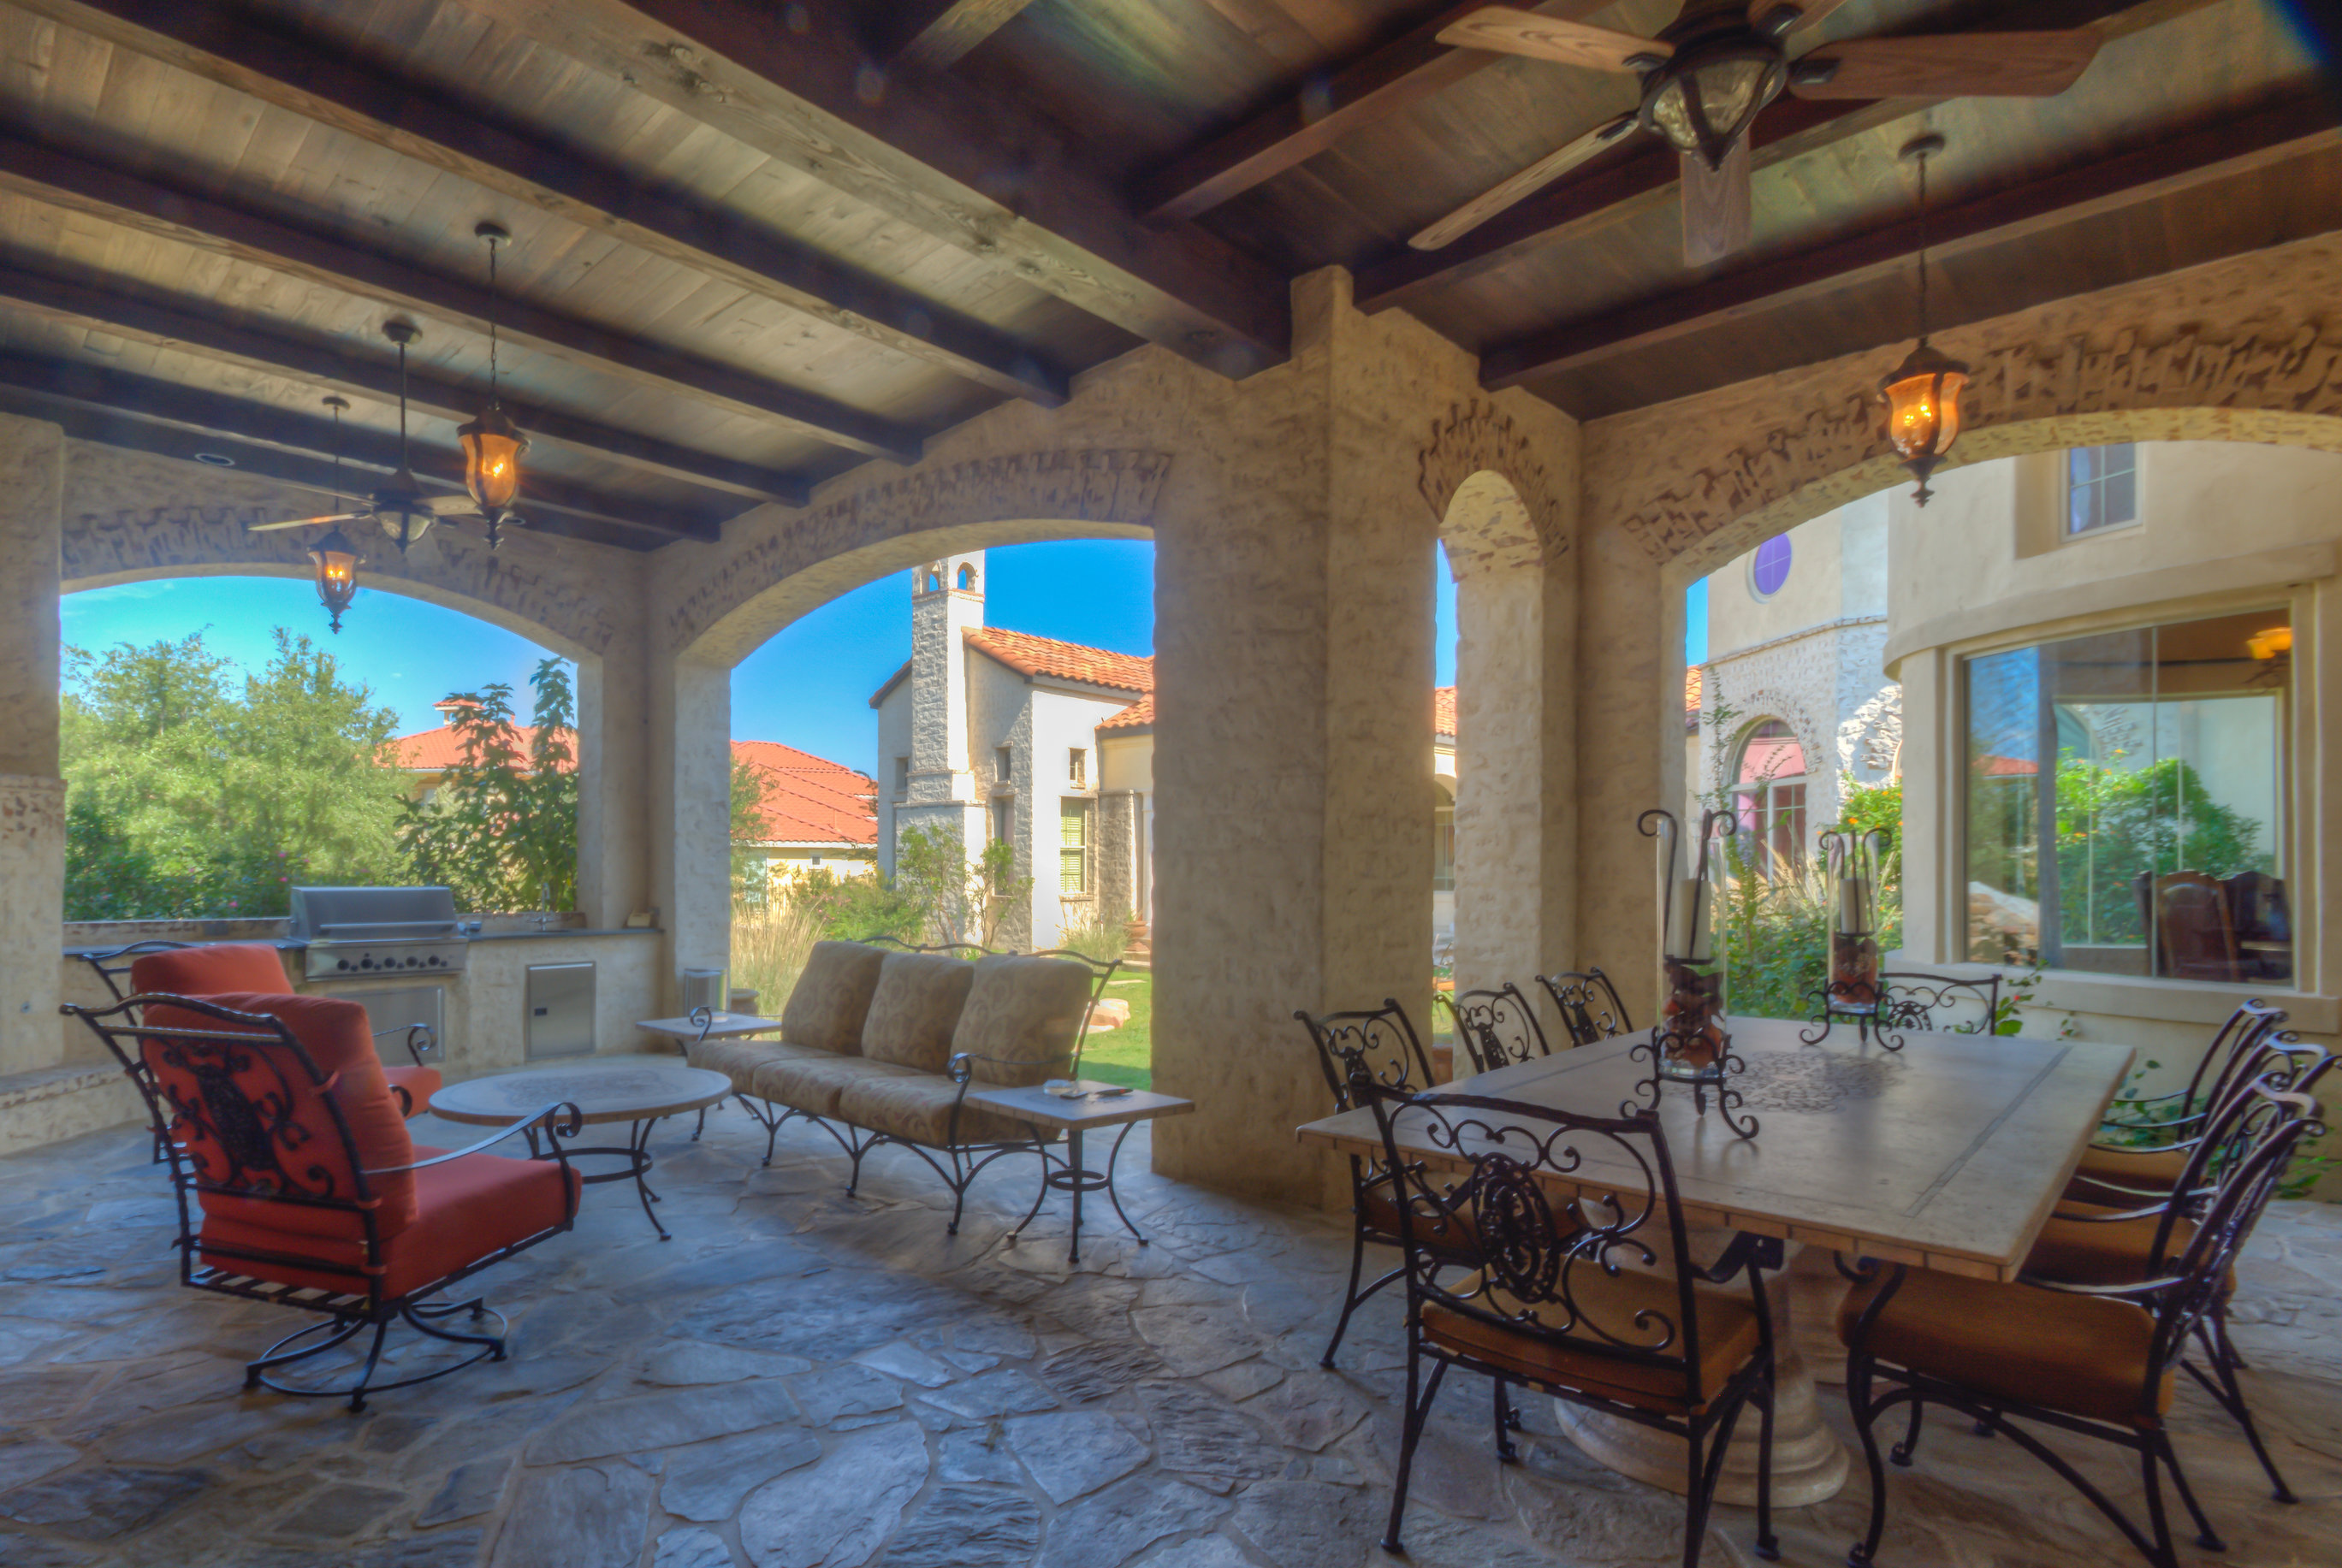 8 San Antonio Outdoor Kitchens Perfect For Football Season